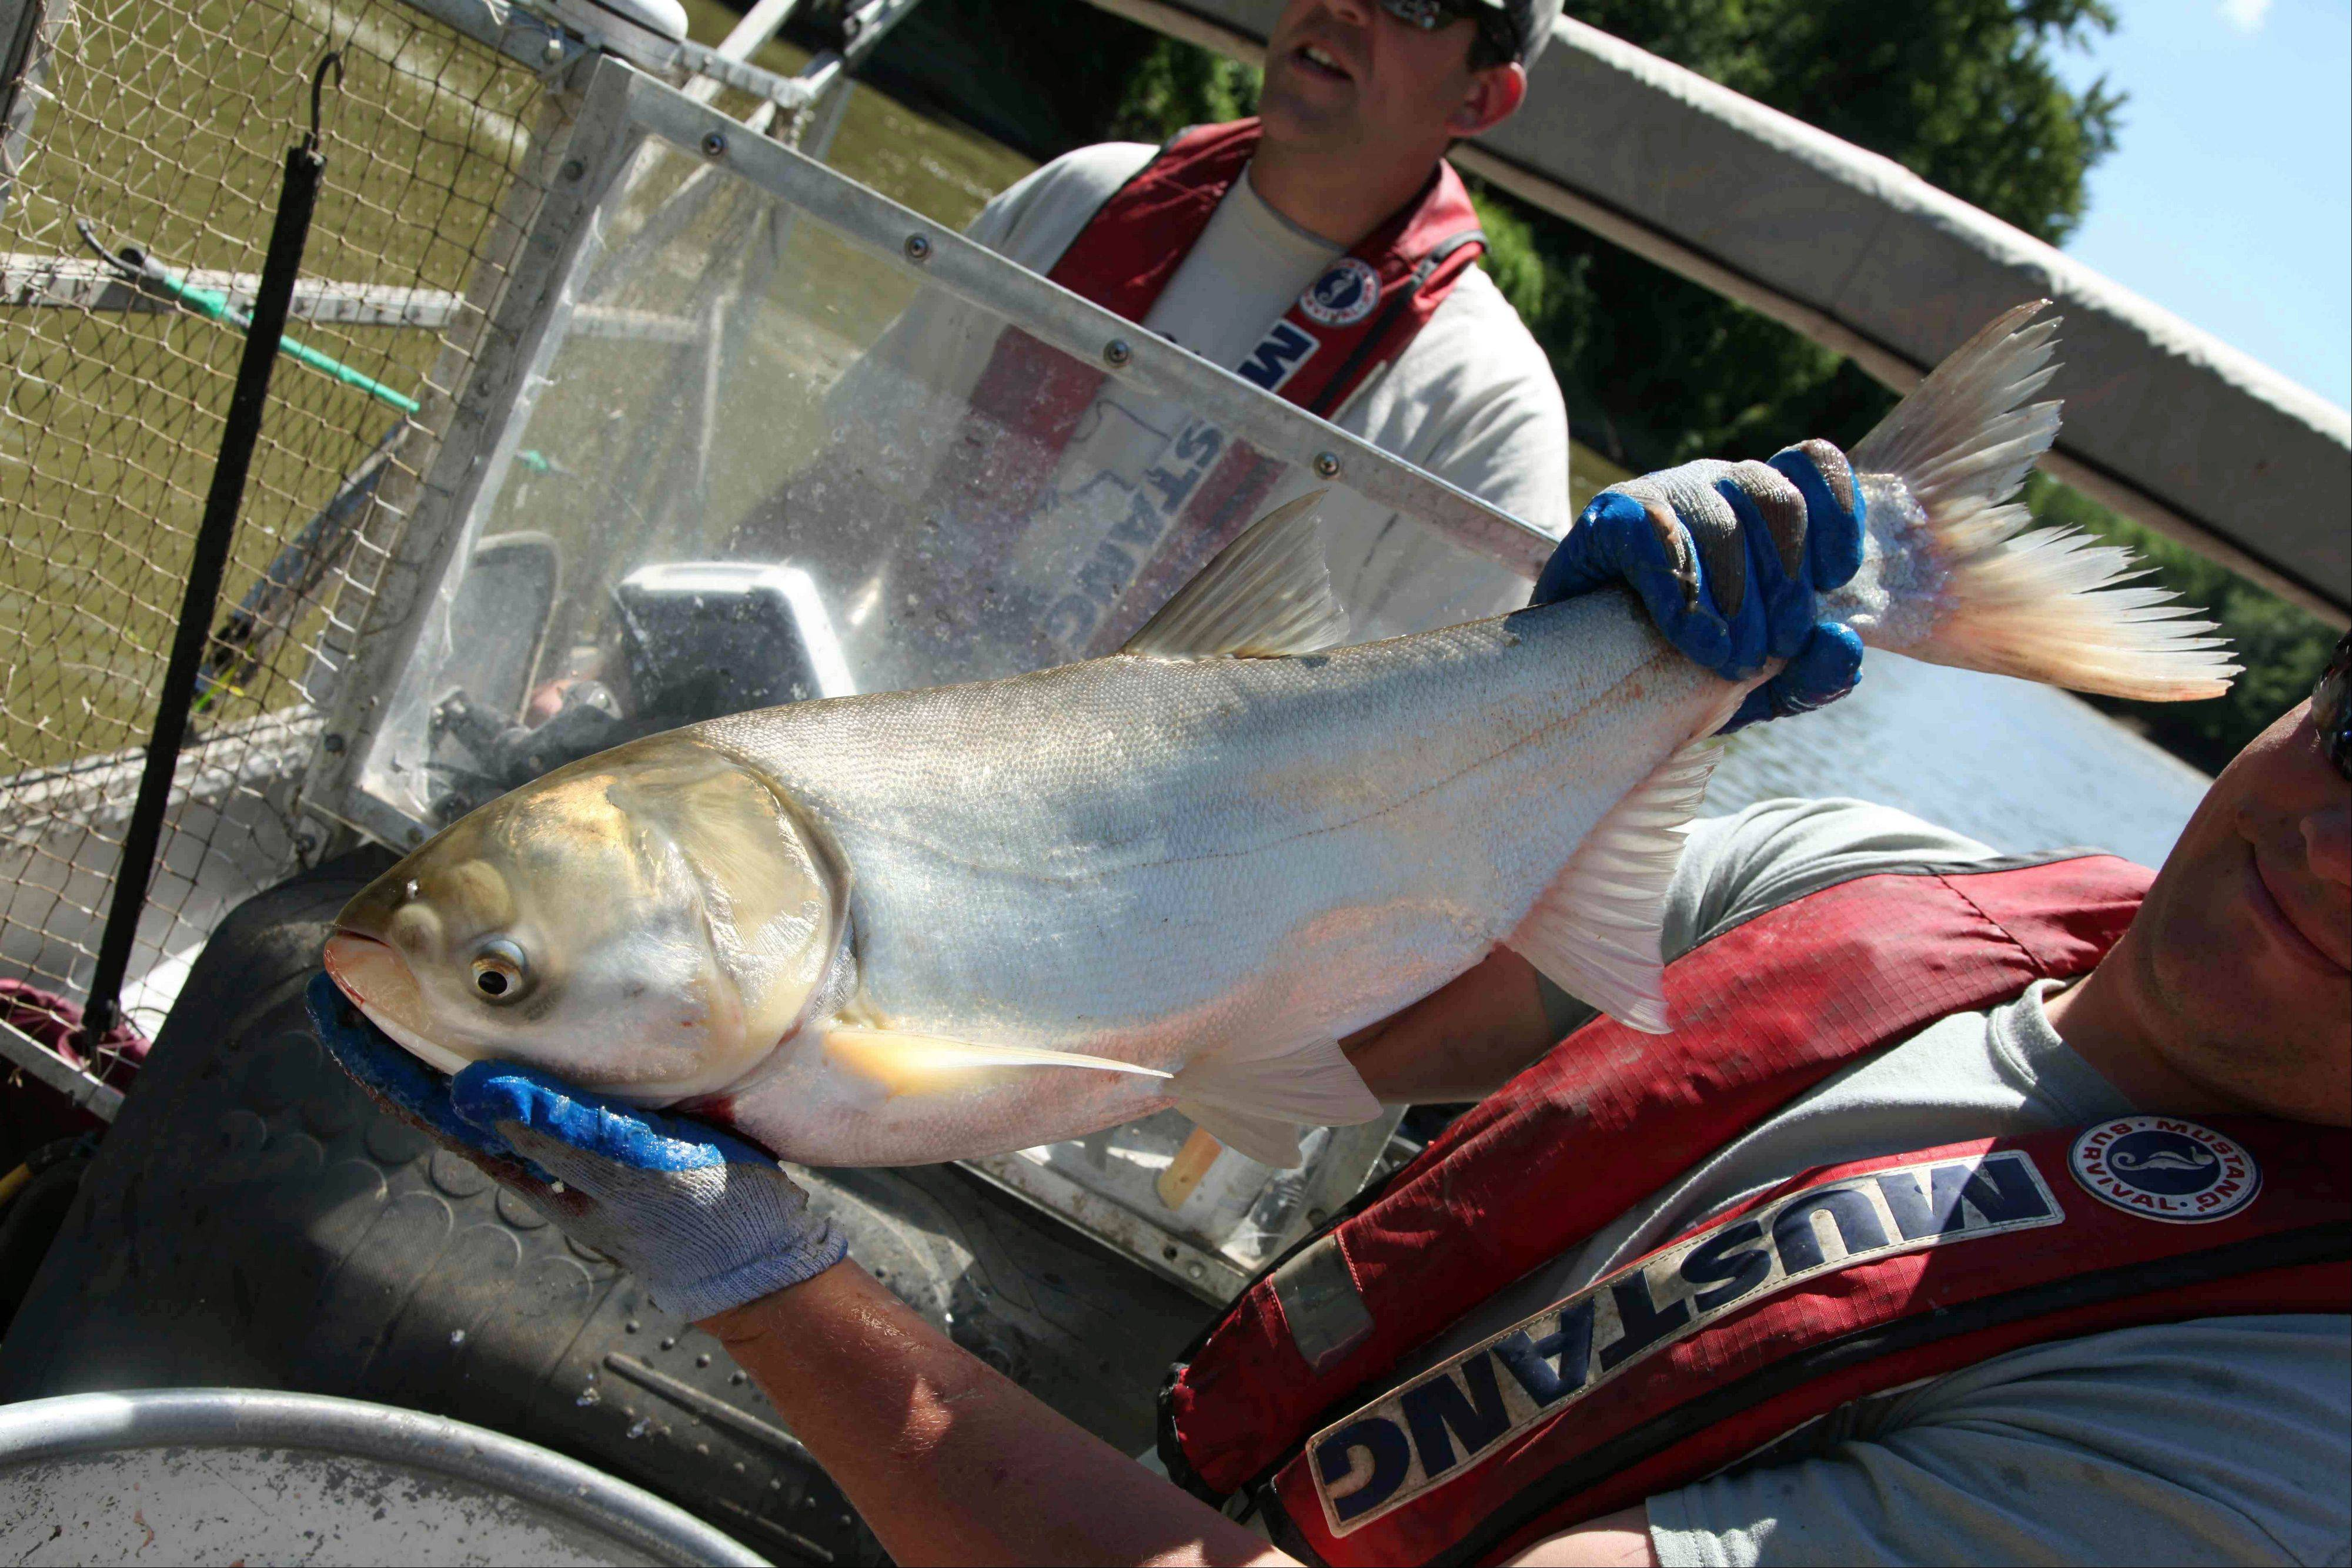 Travis Schepker, a biology intern, holding an Asian carp pulled from the Illinois River near Havana, Ill.